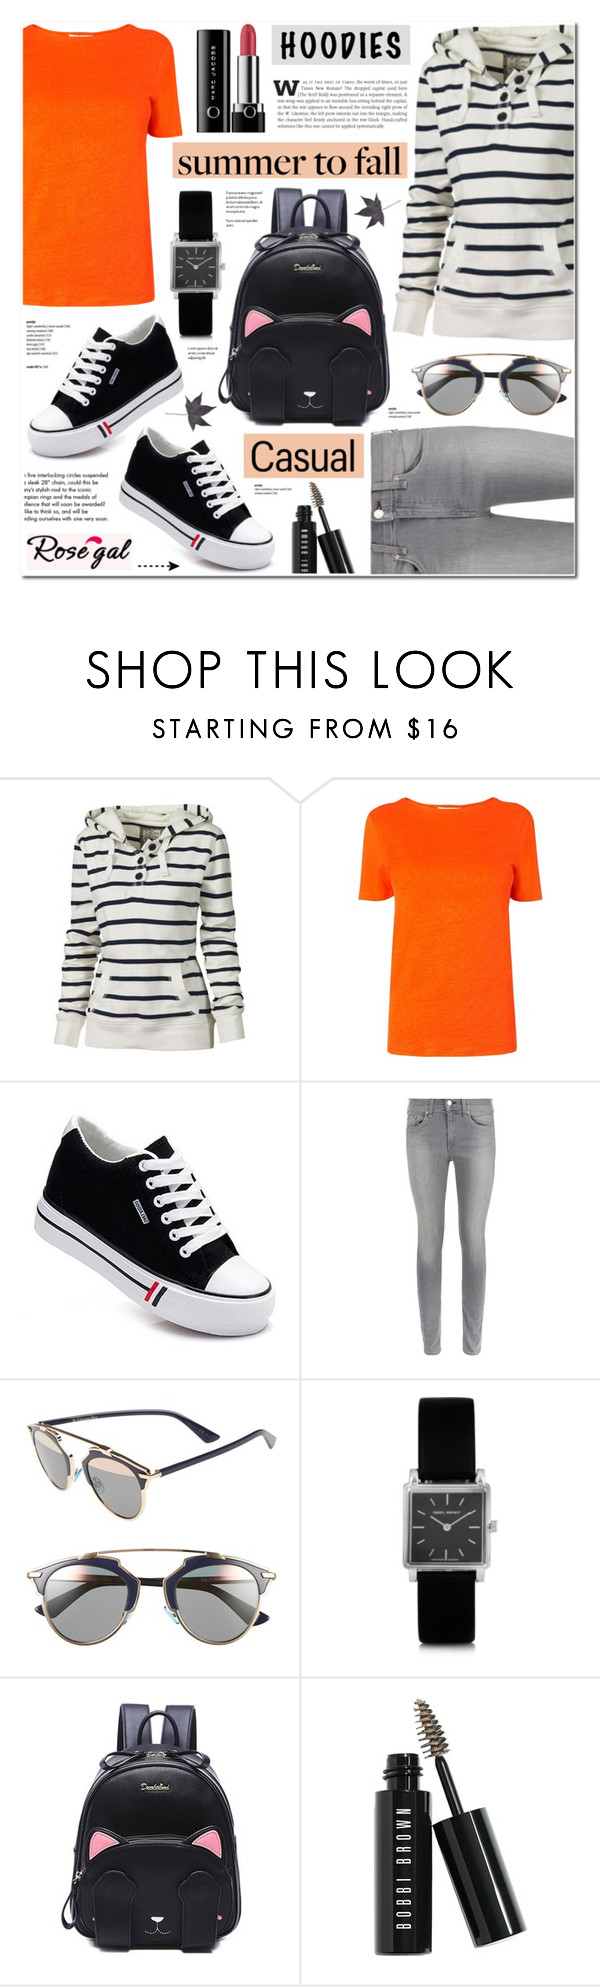 """Summer to Fall Layering-Hoodies- Rosegal 10"" by anyasdesigns ❤ liked on Polyvore featuring L.K.Bennett, rag & bone, Christian Dior, Isabel Marant, Bobbi Brown Cosmetics, Marc Jacobs and Tiffany & Co."